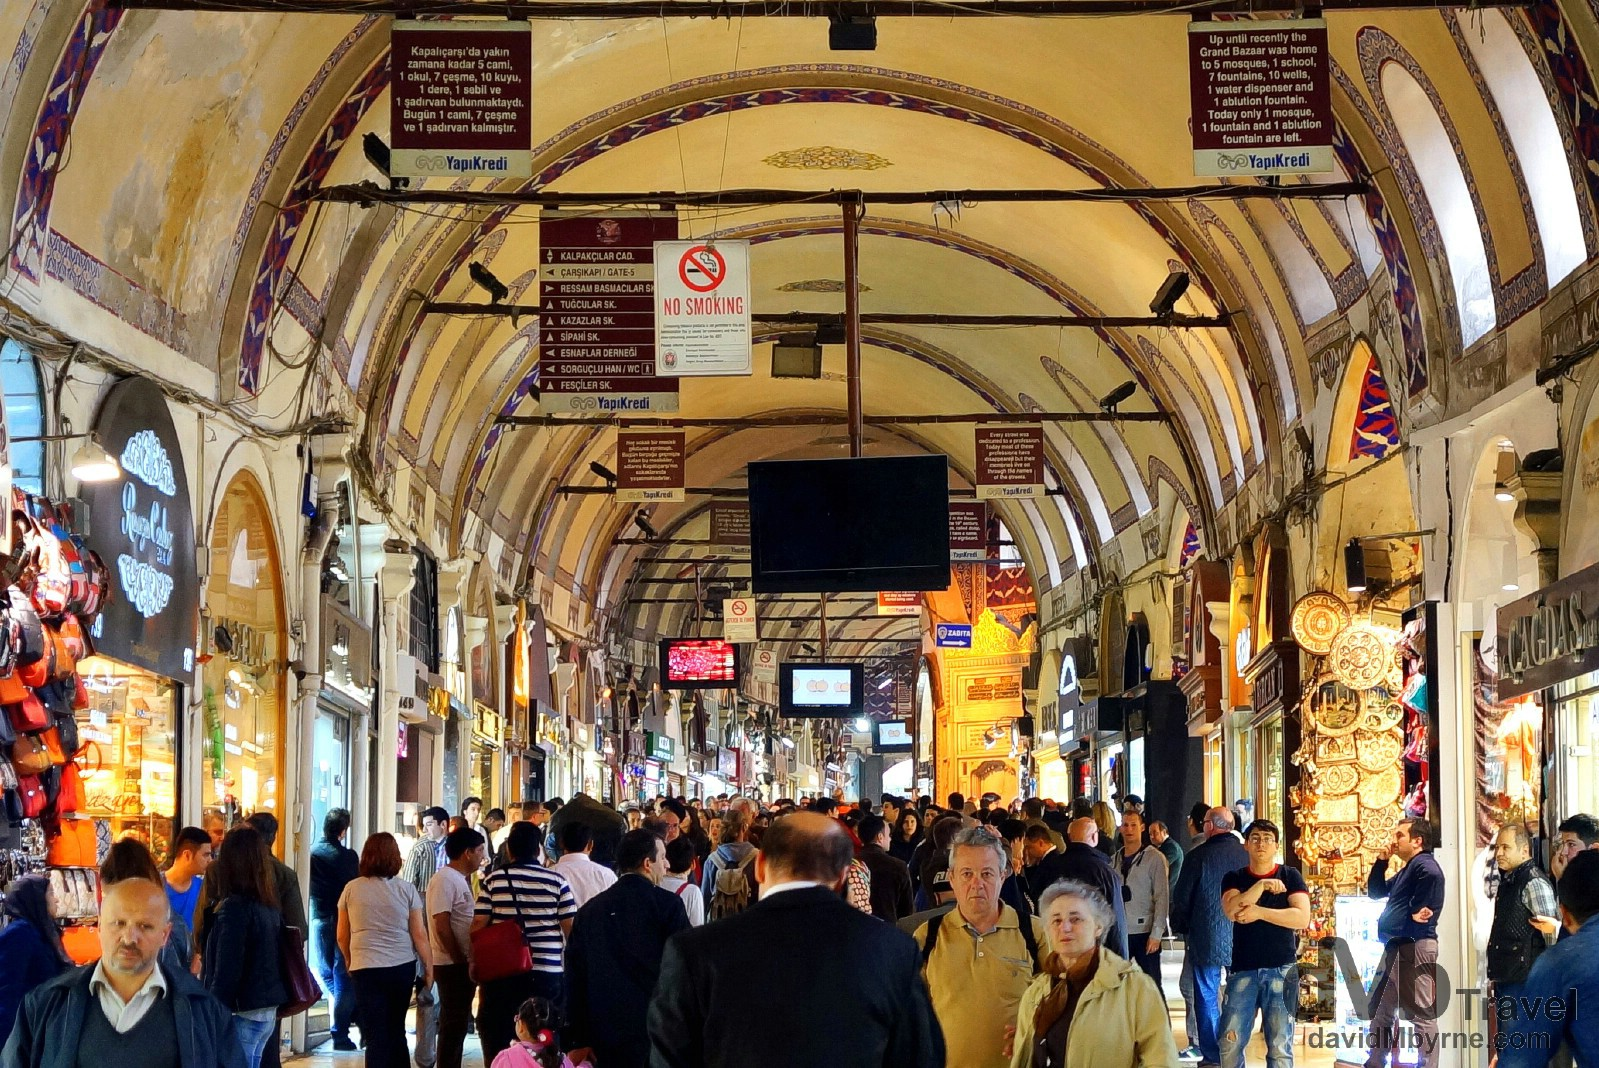 The Grand Bazaar, Istanbul, Turkey. April 10th, 2014.